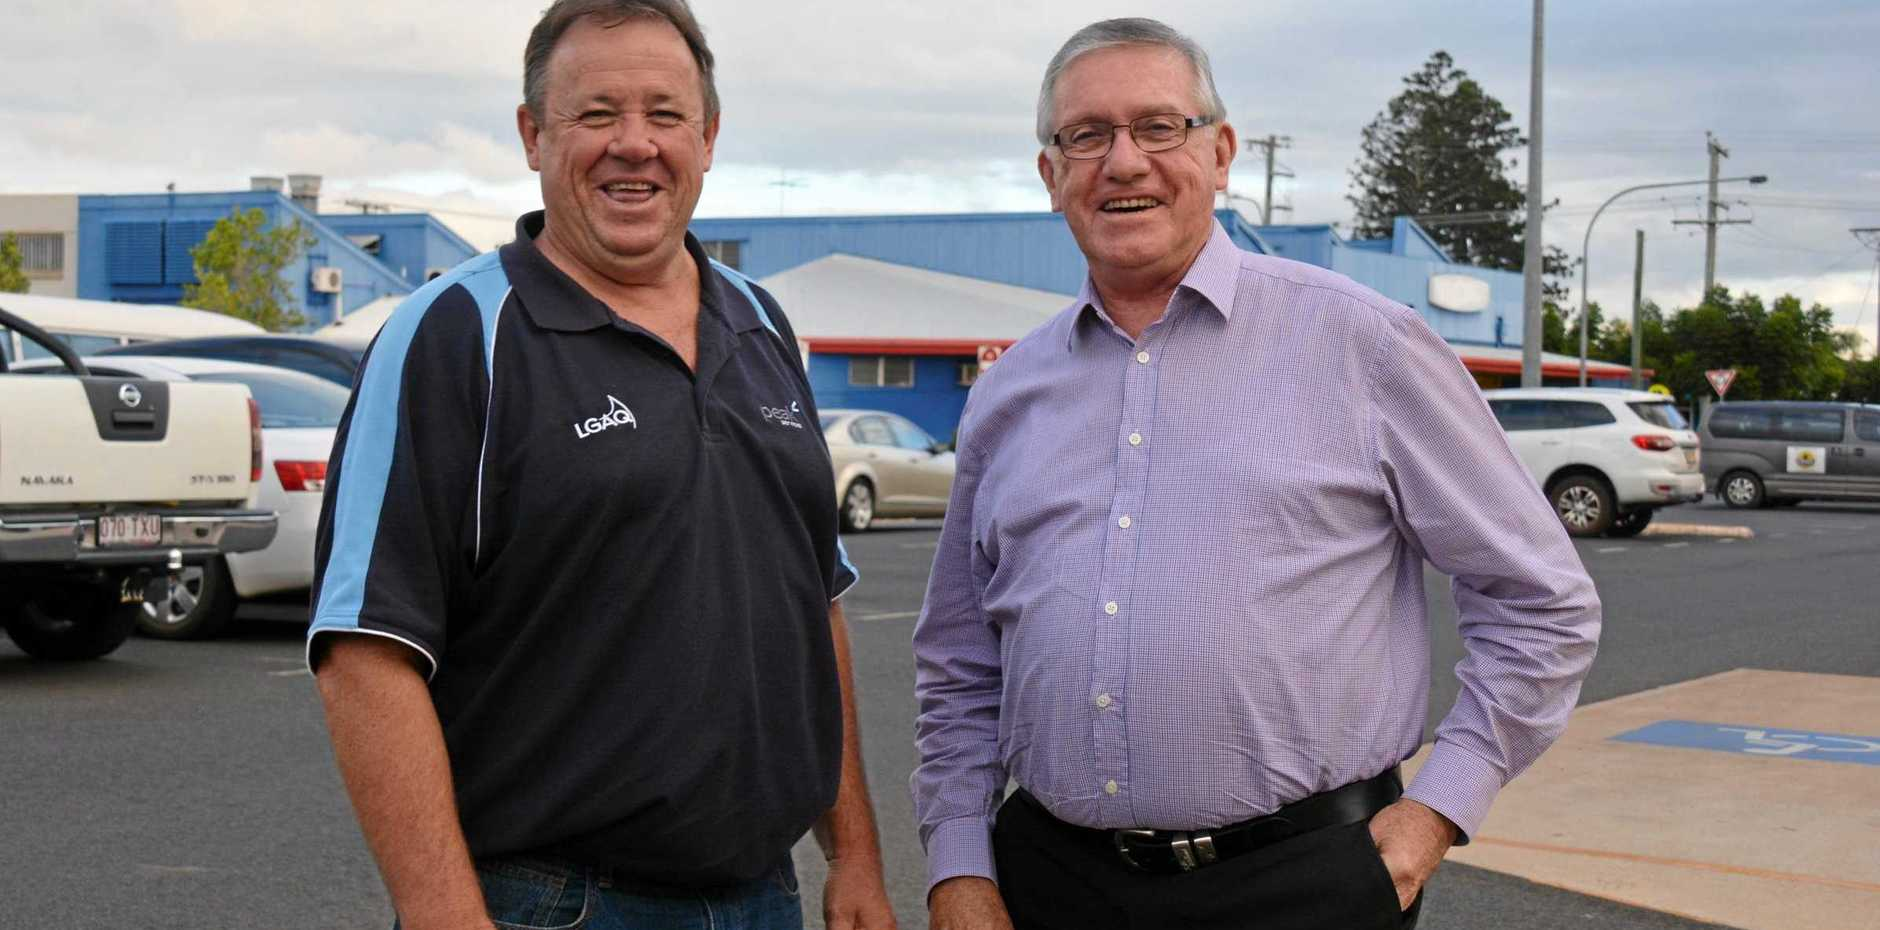 ON THE ROAD: Cr Gavin Jones and Mayor Keith Campbell believe the South Burnett Regional Council region is on track to have one of the better road networks in Queensland.